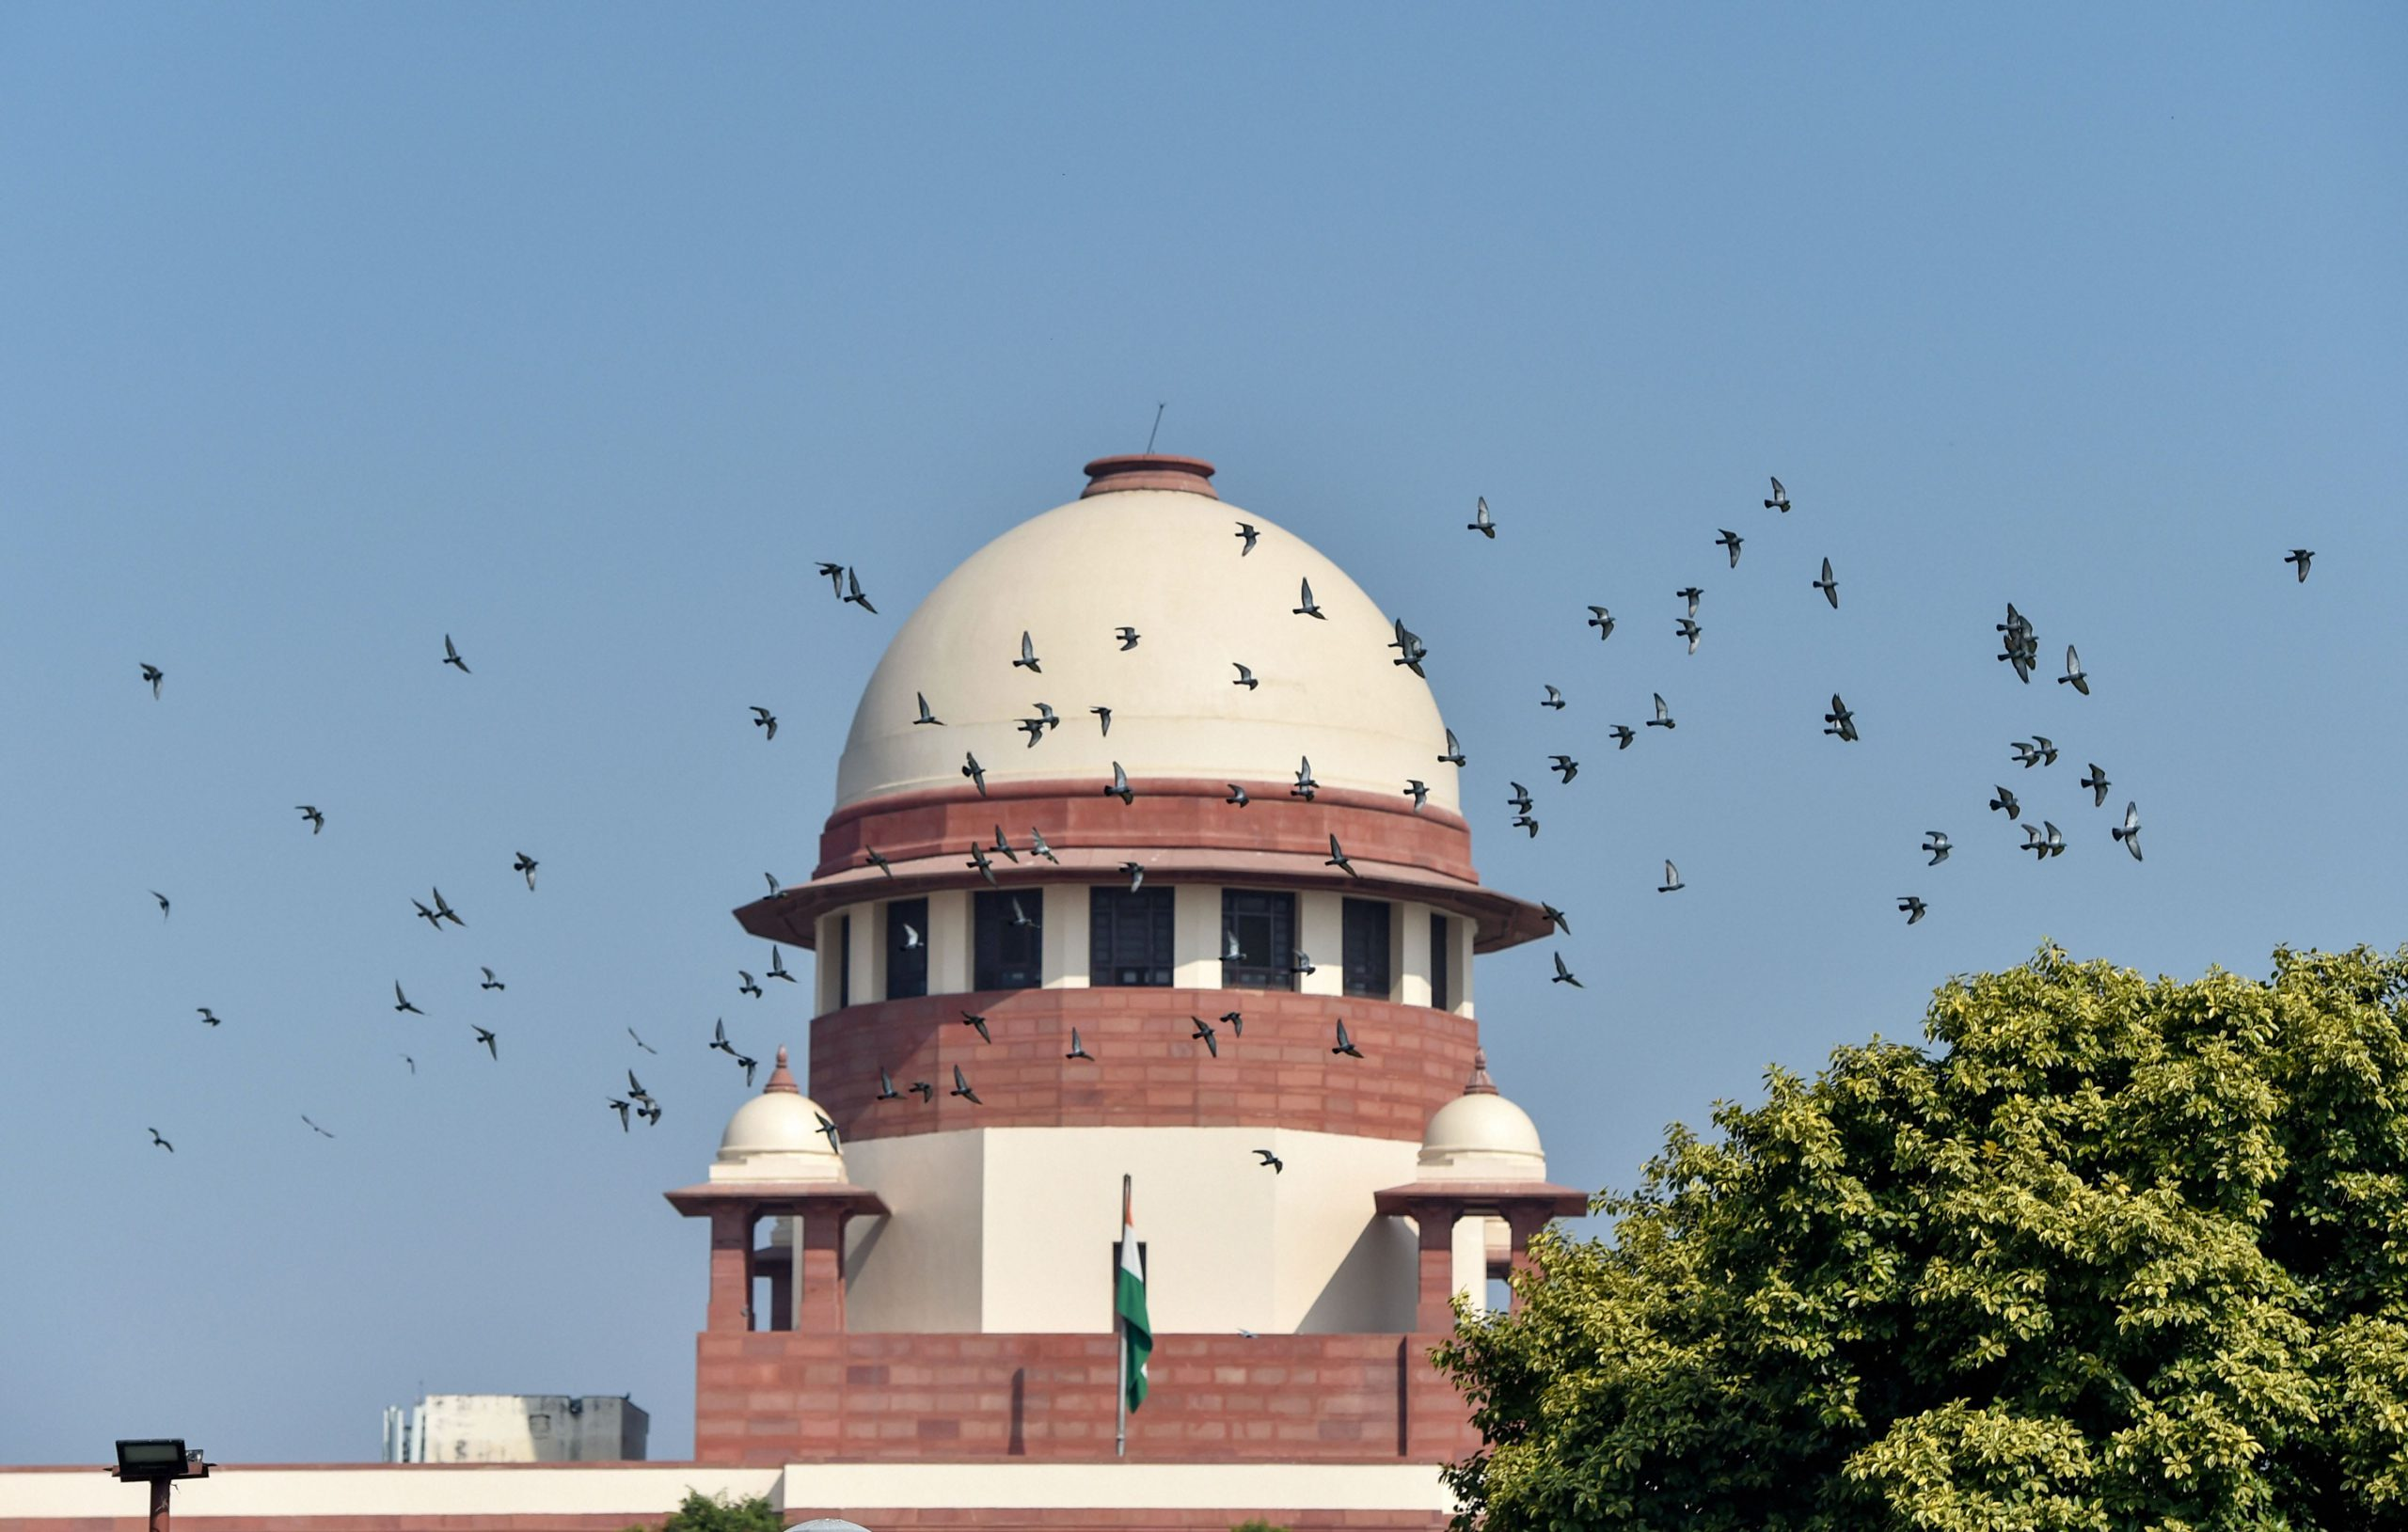 Supreme Court order for free coronavirus testing may hinder fight, say business leaders, health experts